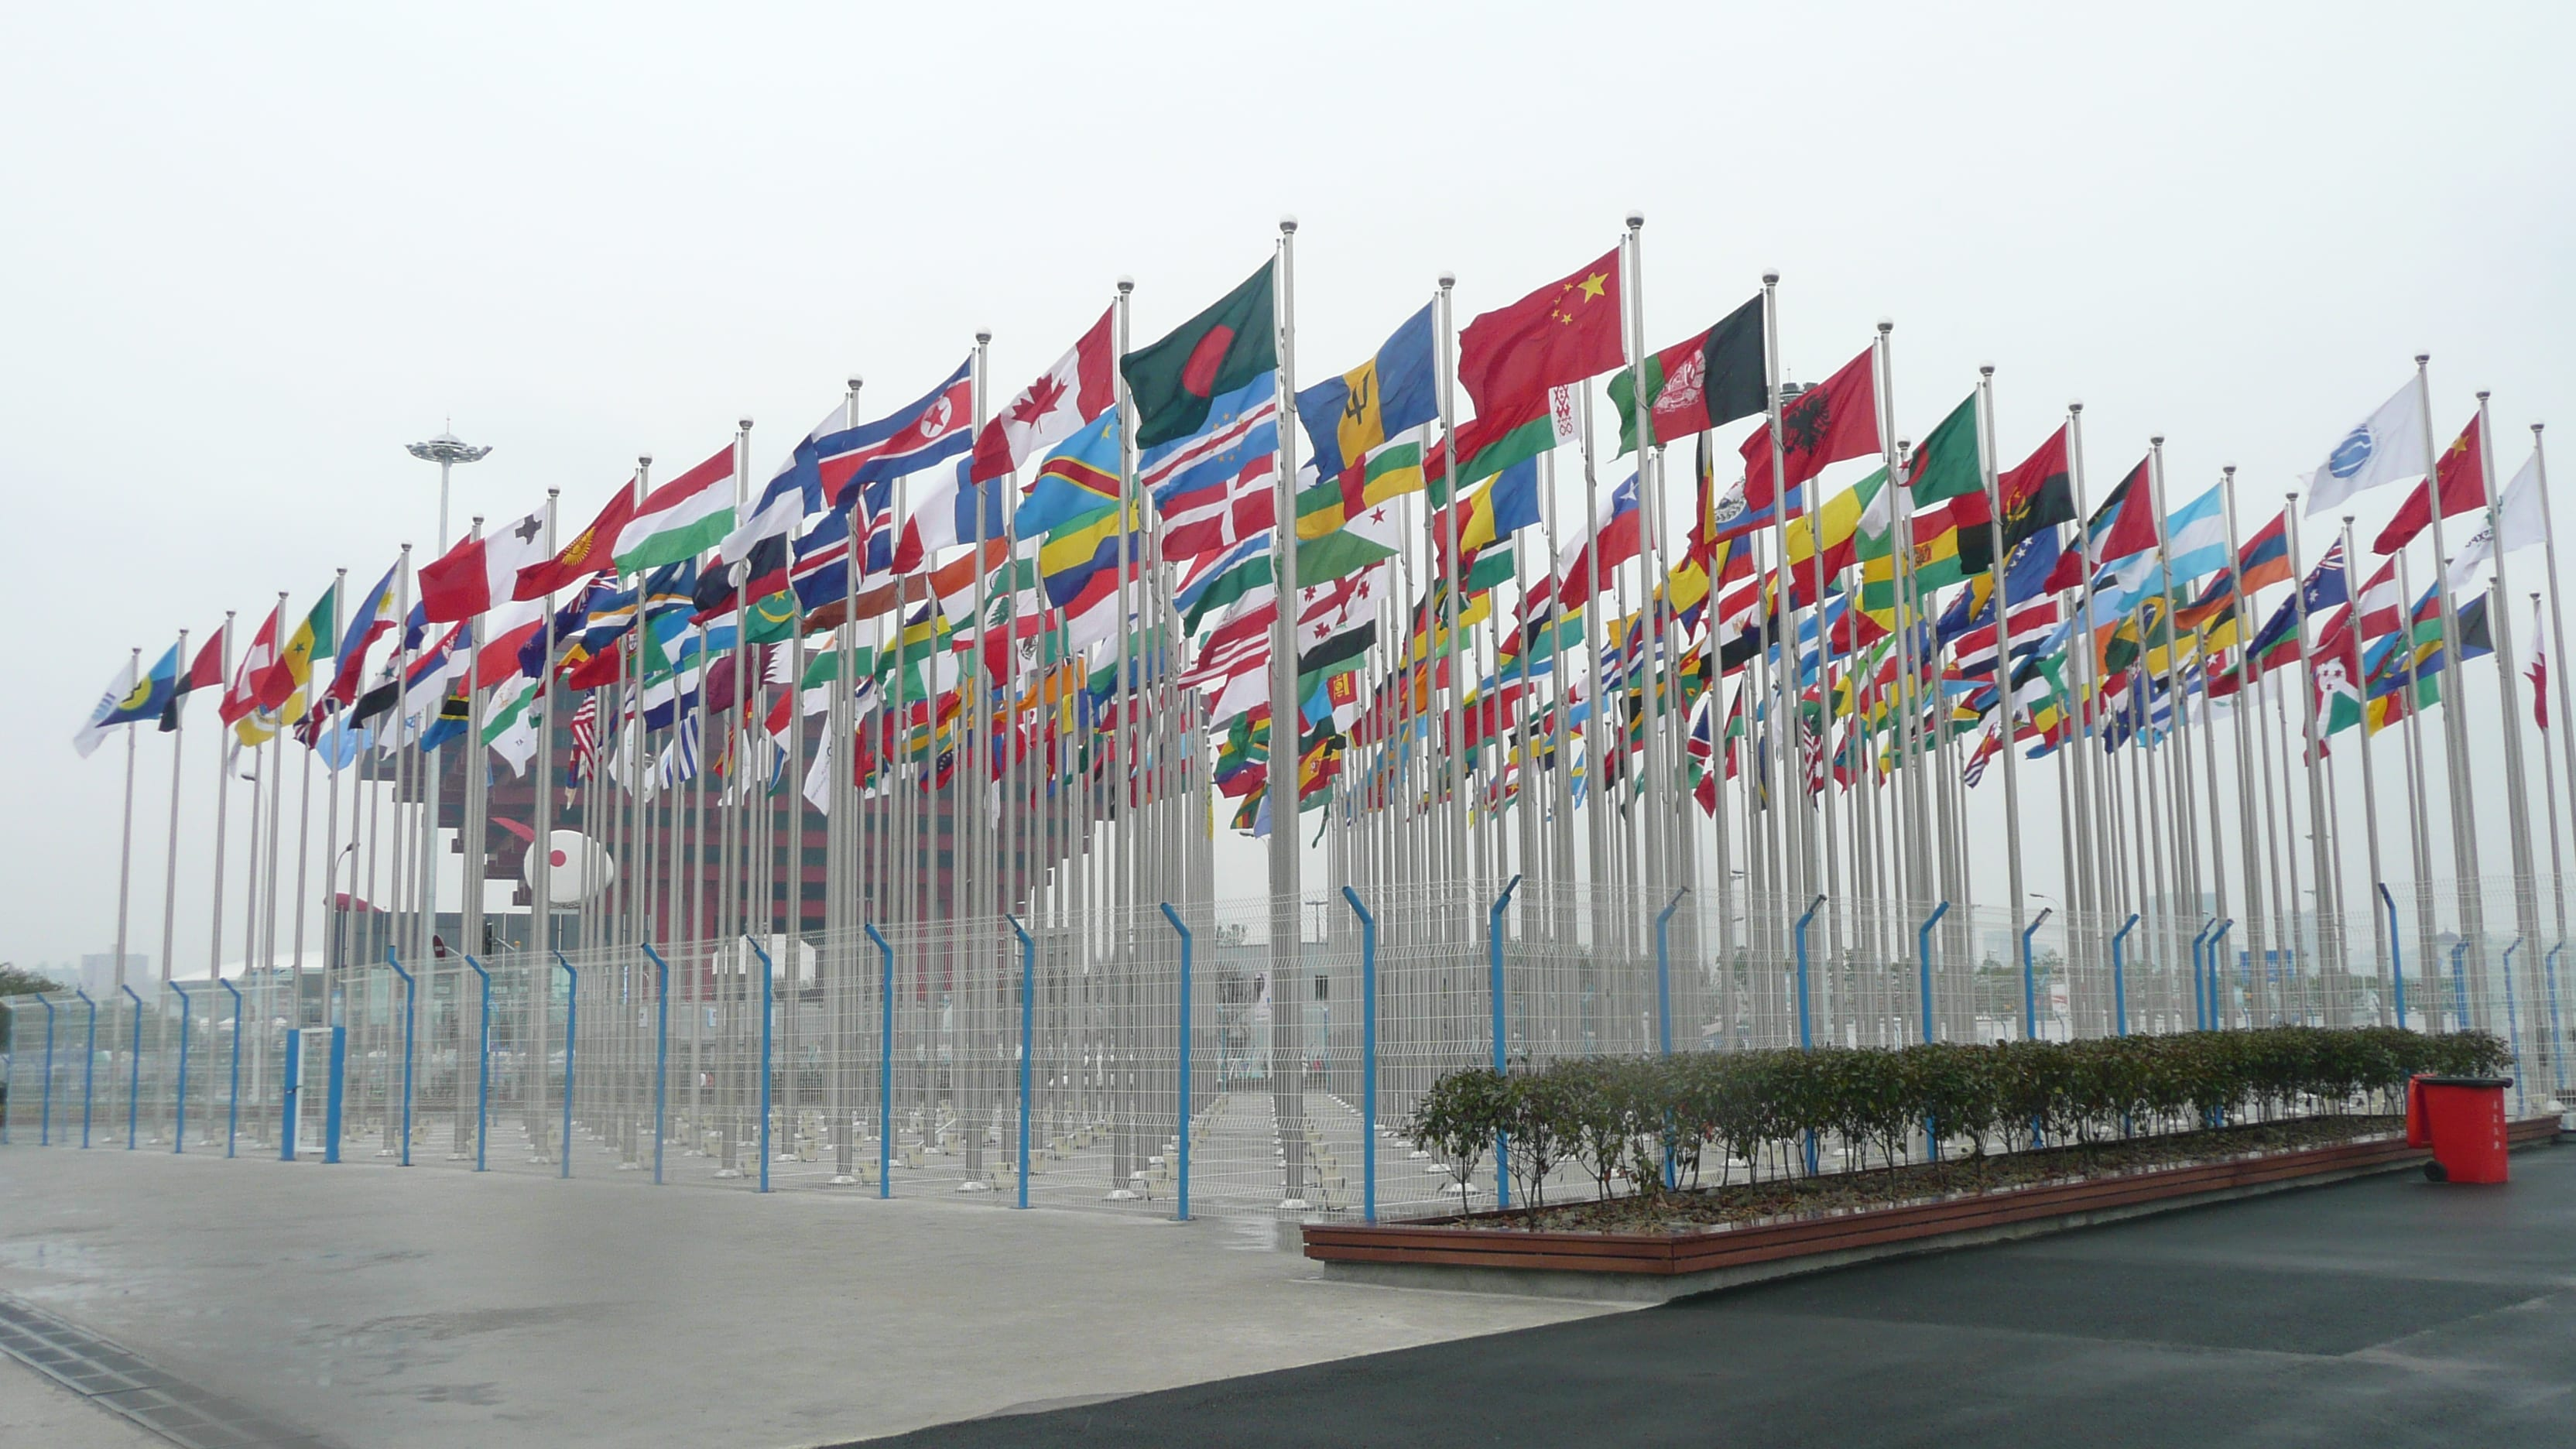 expo_2010_flags_1